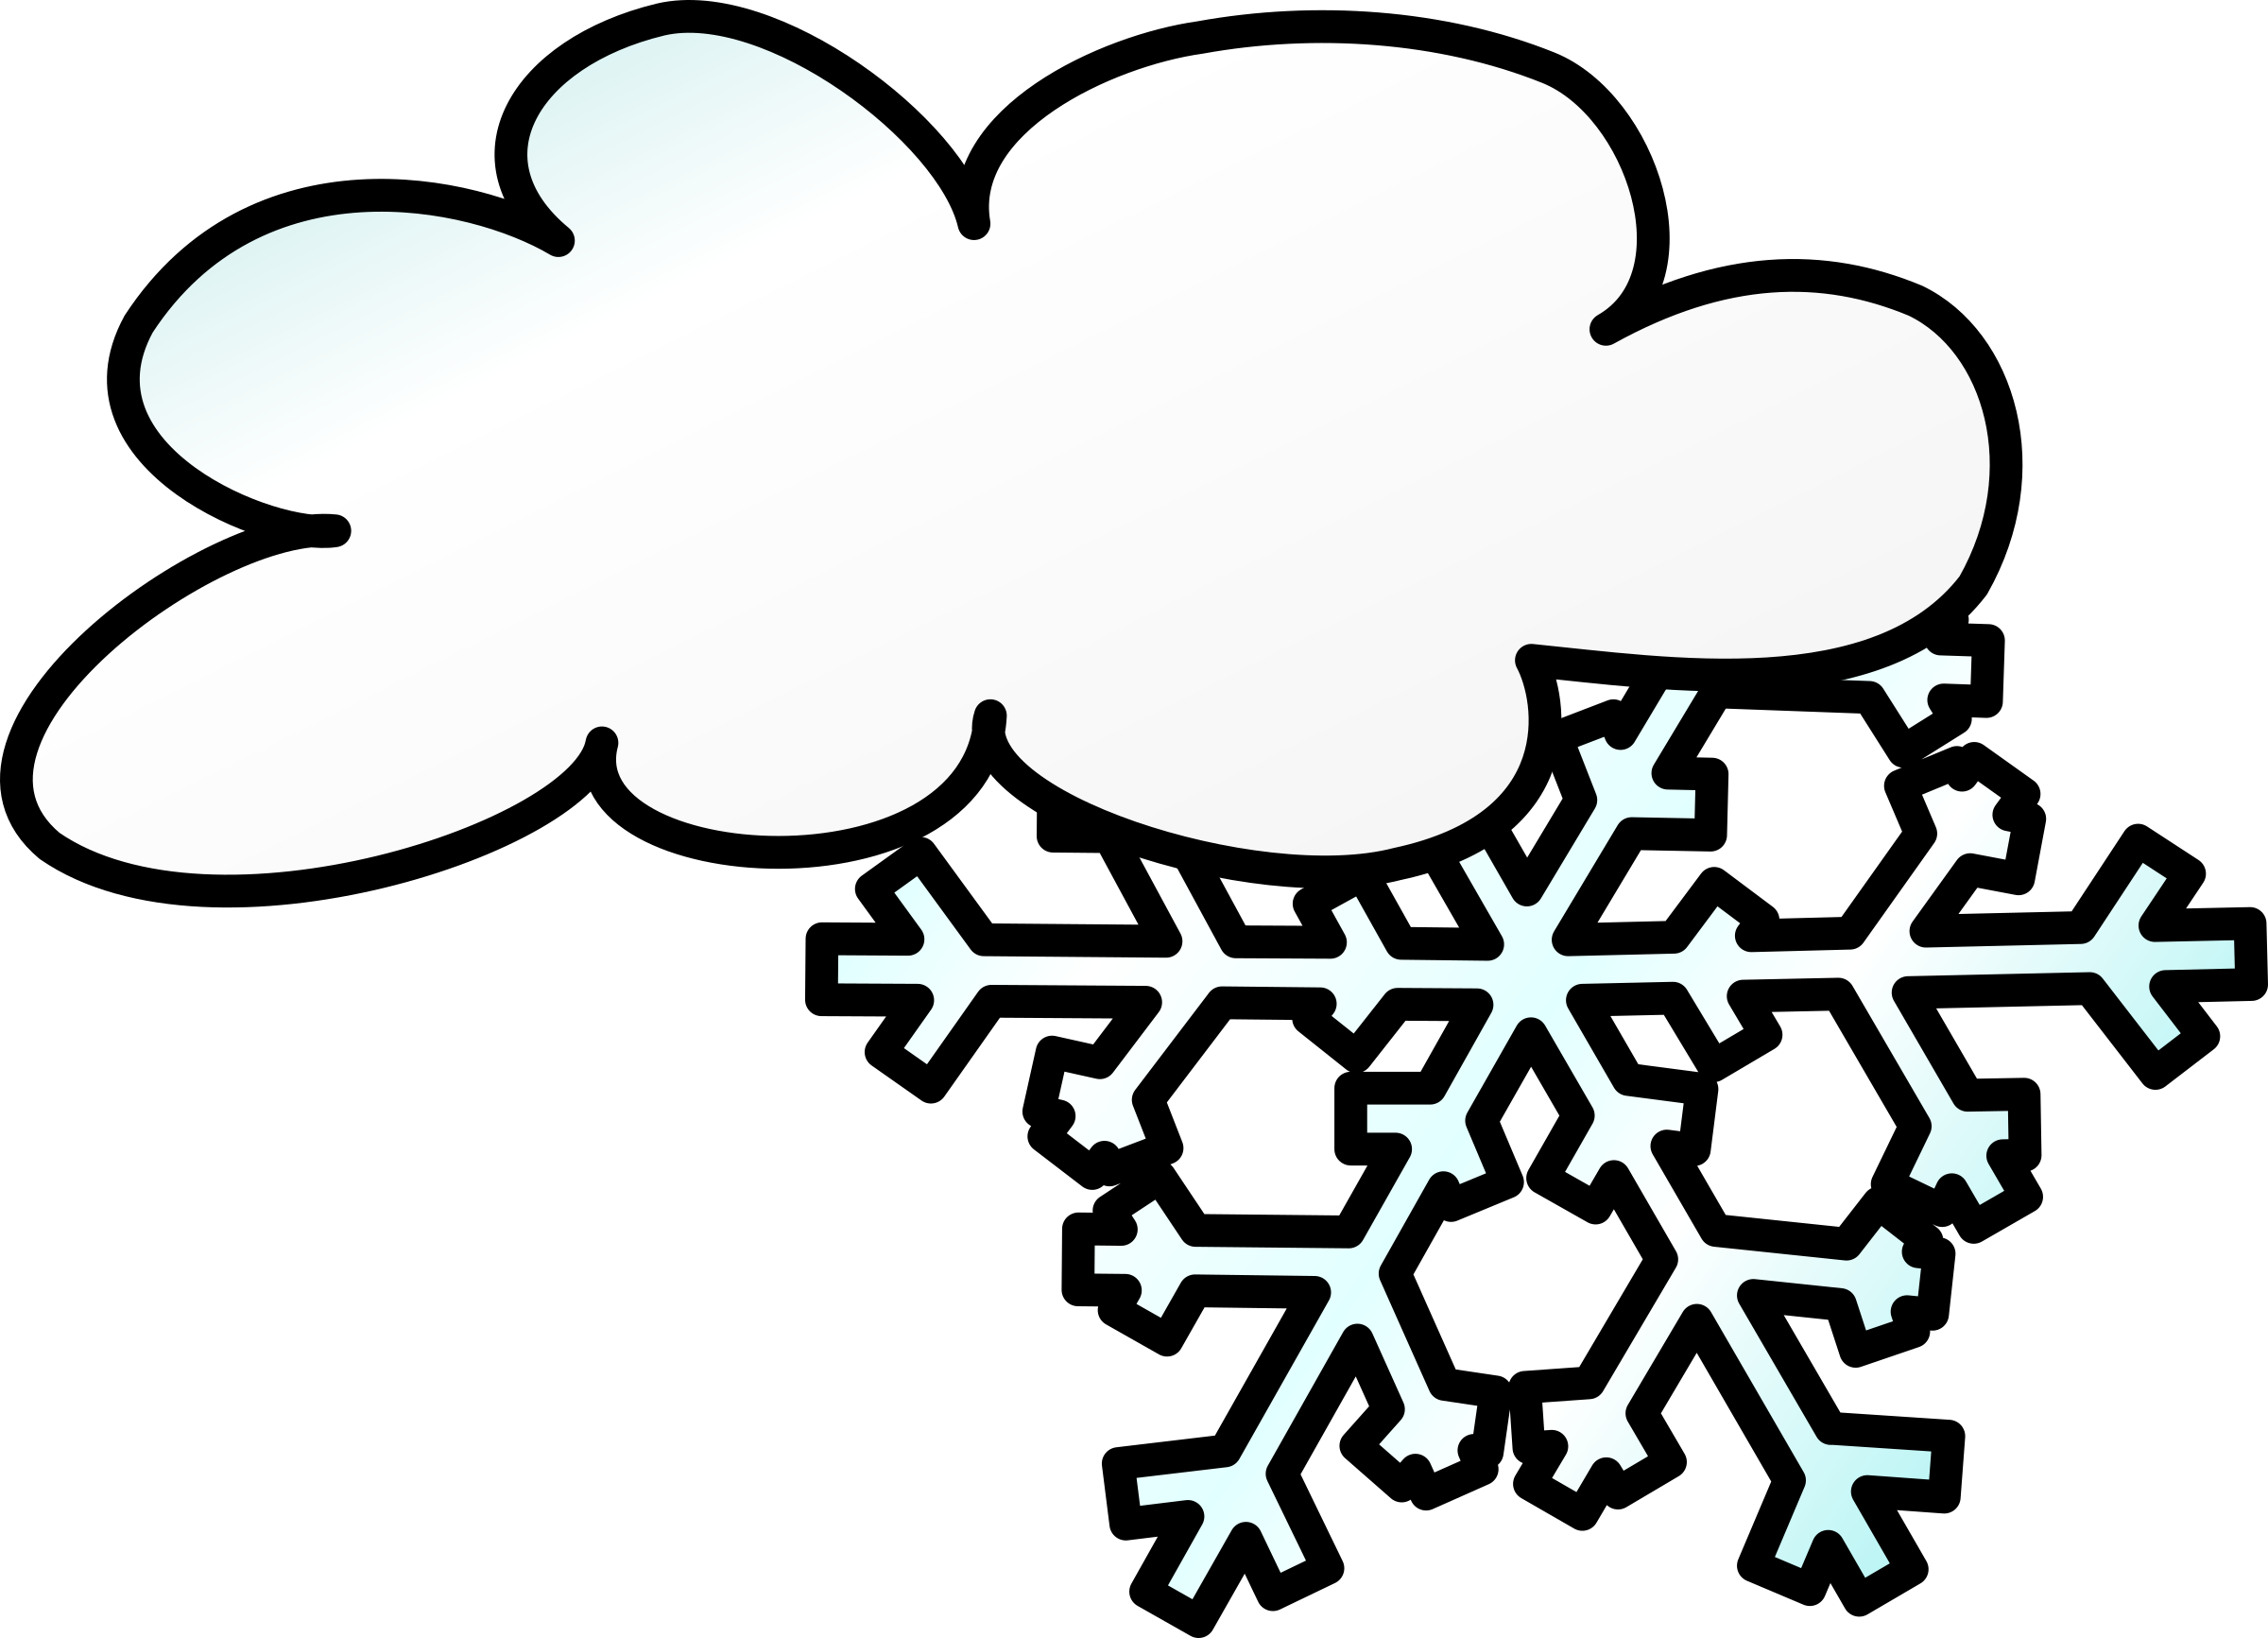 Snowflake falling clipart black and white png library download Clipart - Weather Symbols: Snow Storm png library download